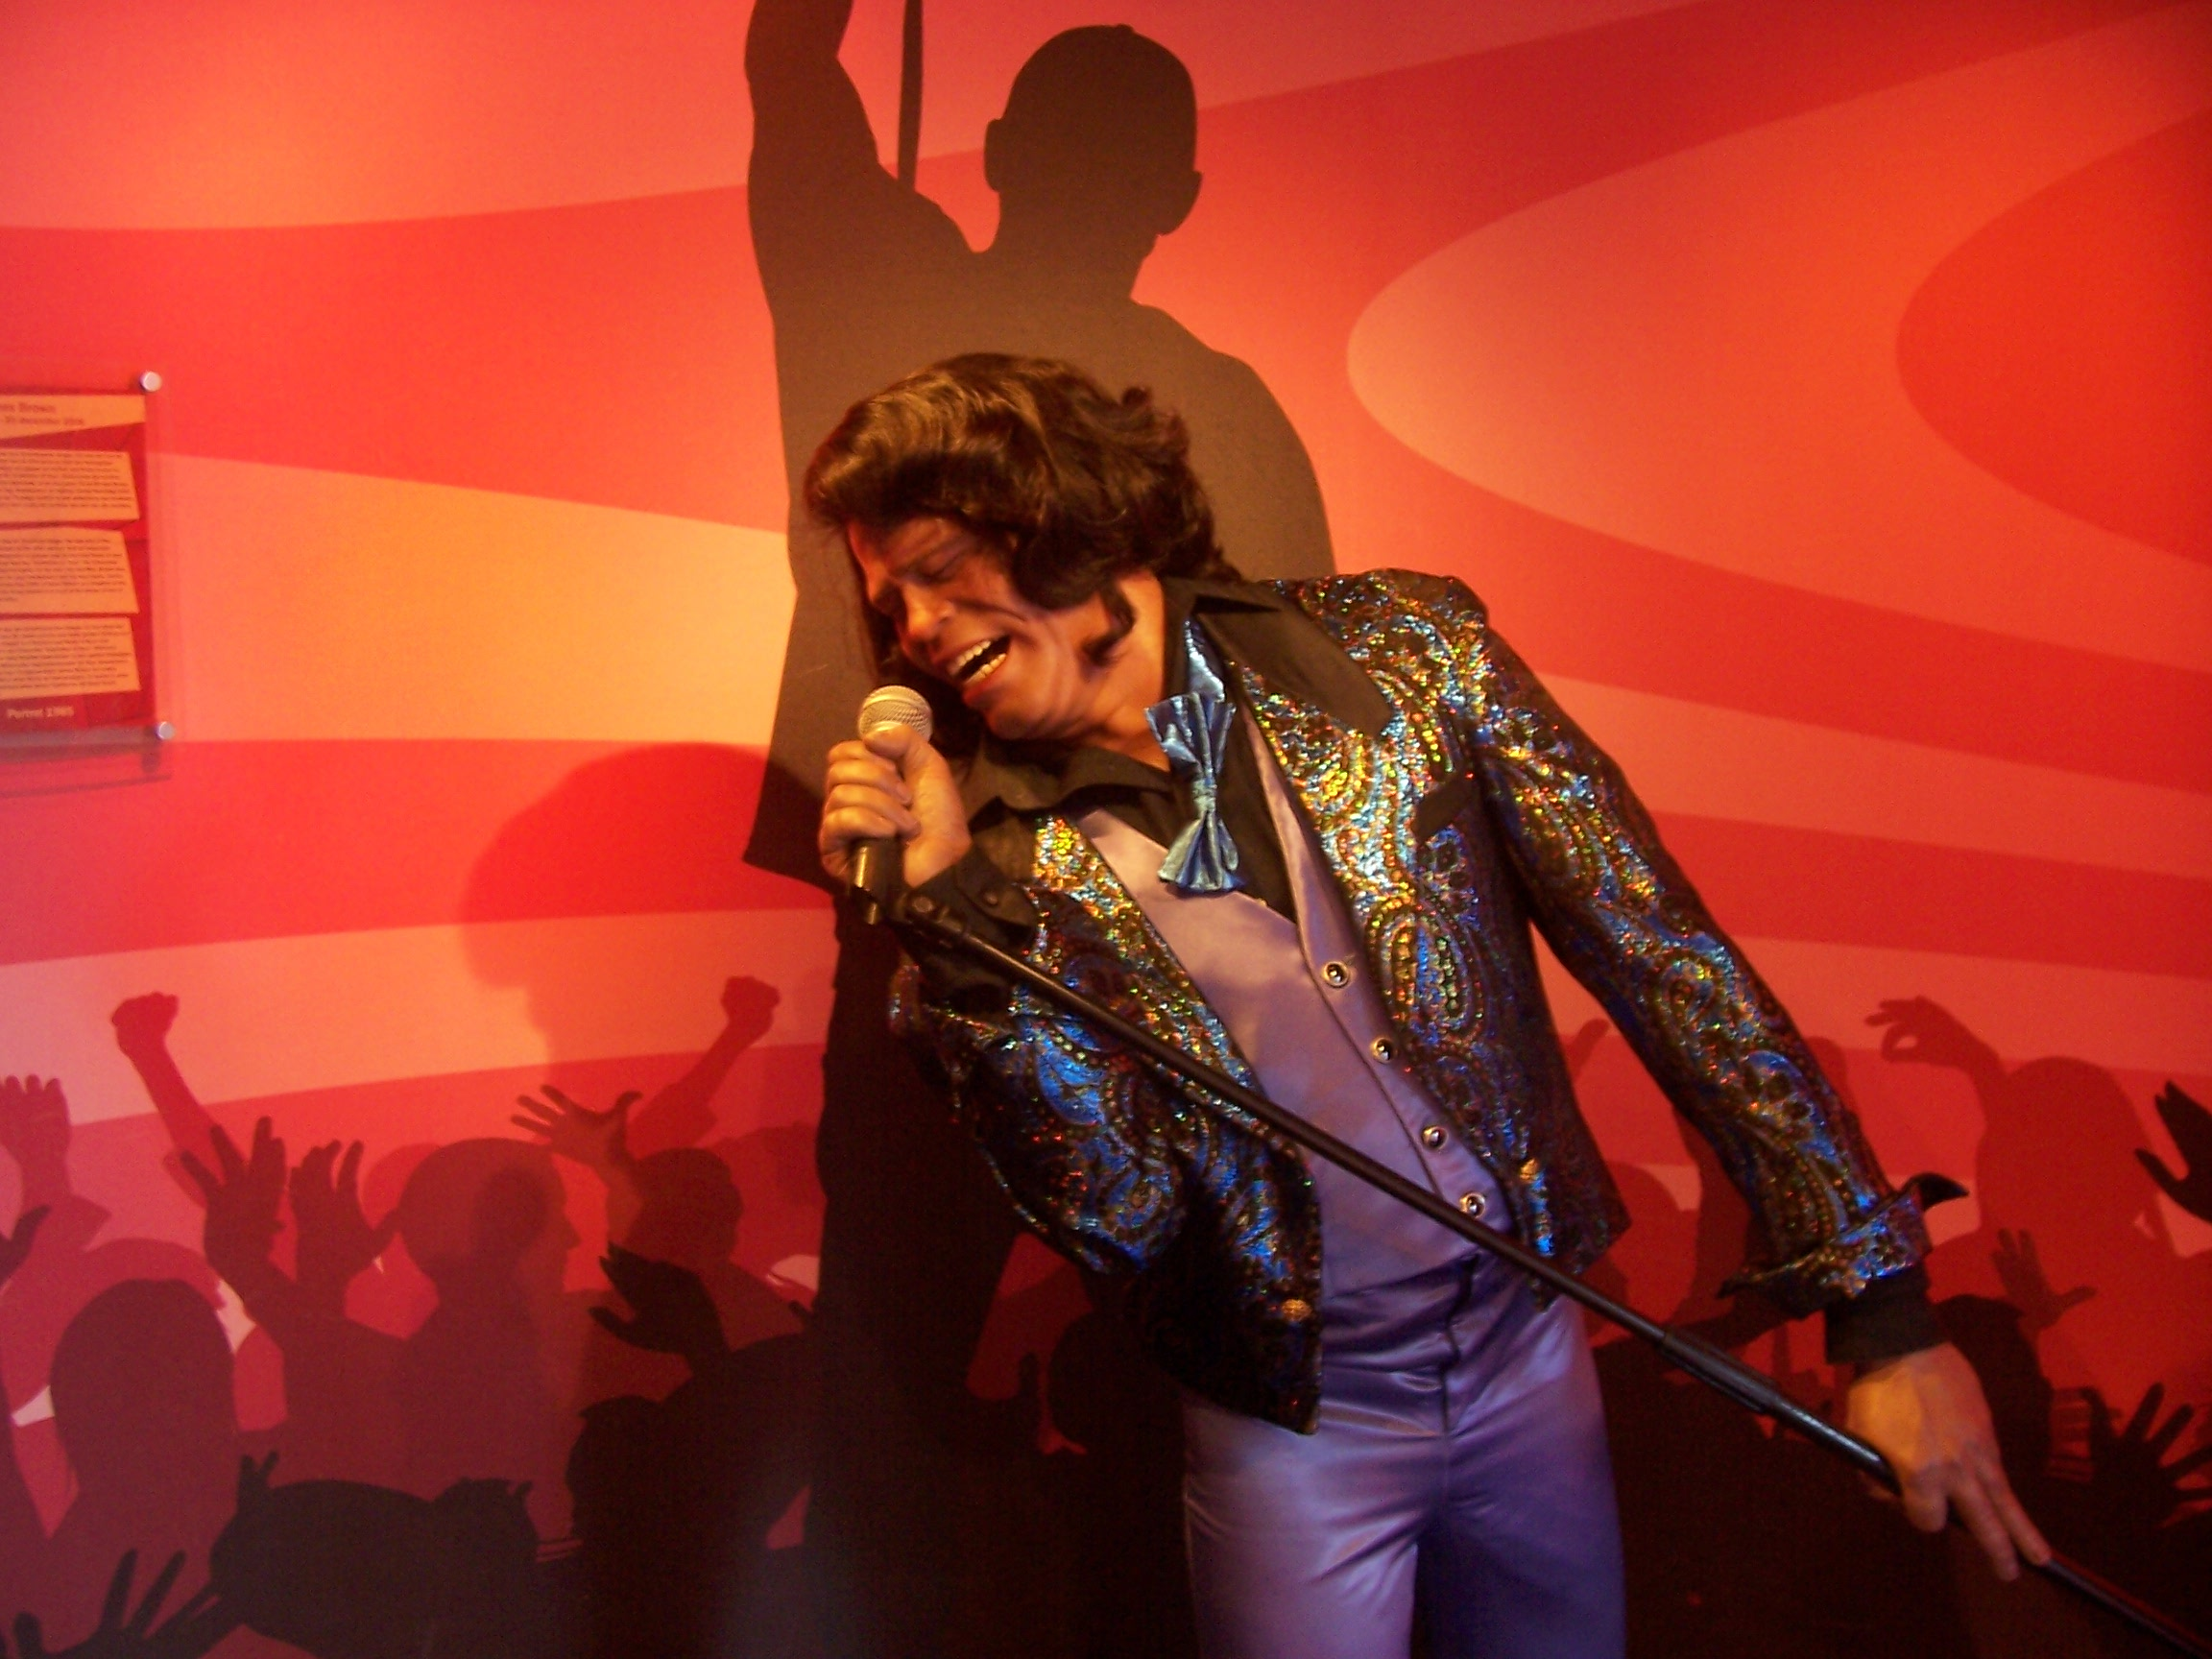 James Brown in Wax ( Source: Berto Garcia via  Wikimedia Commons )